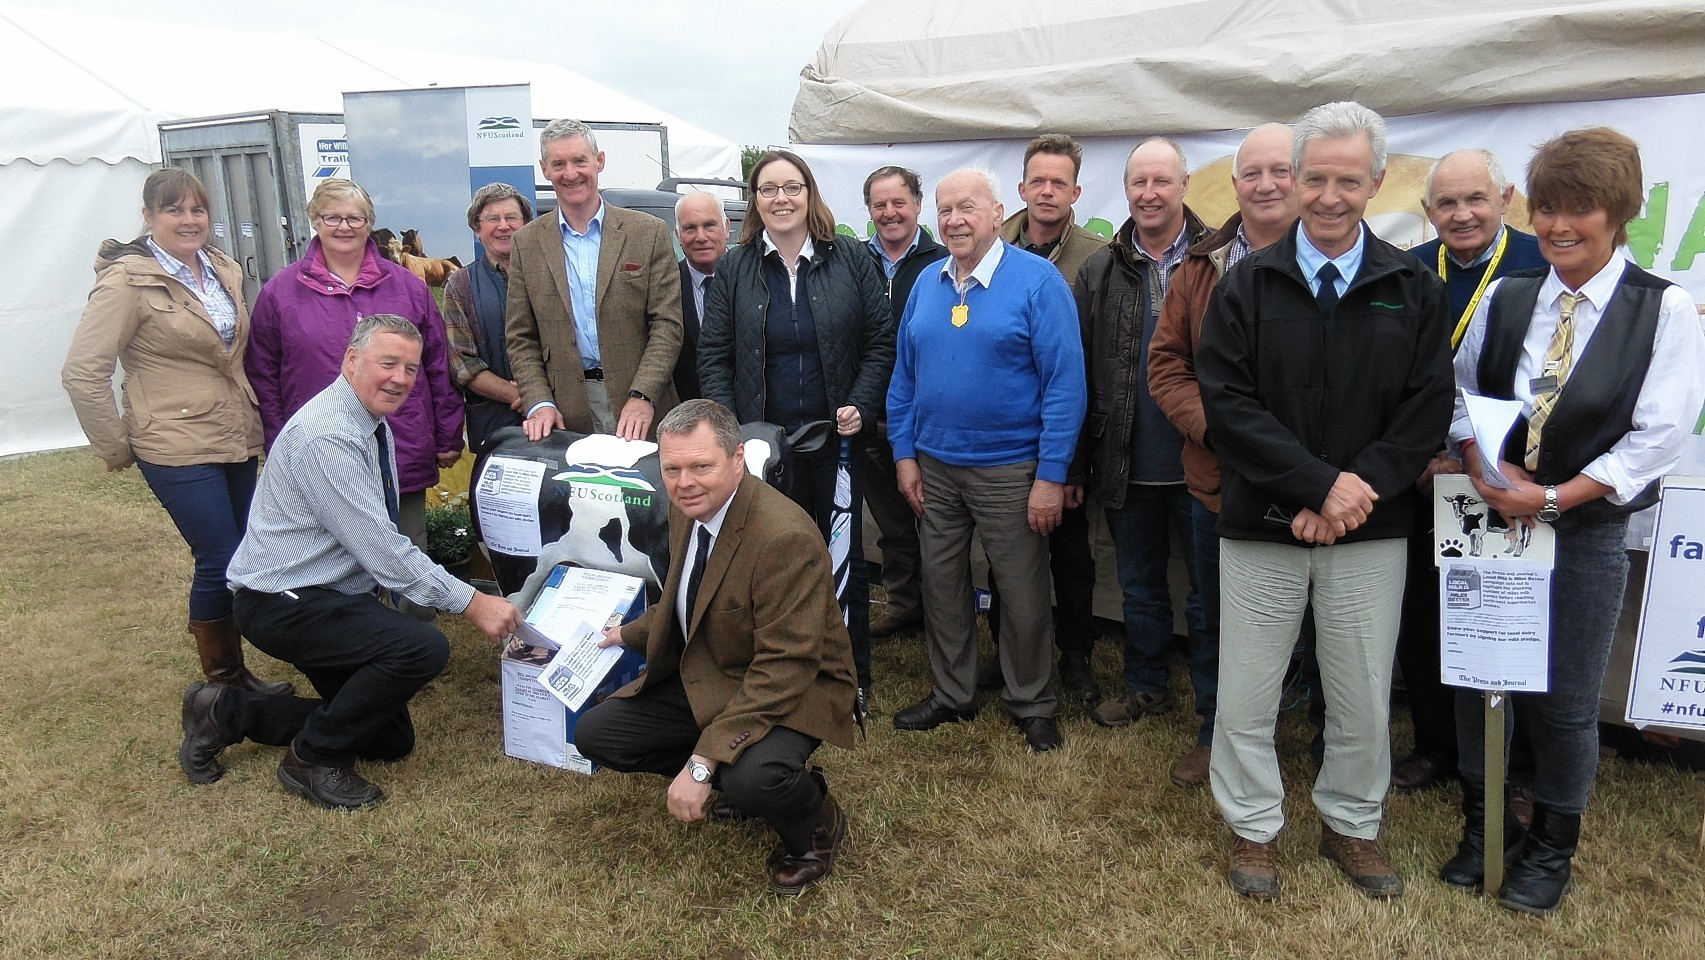 Farmers and politicians signing the petition at the New Deer Show